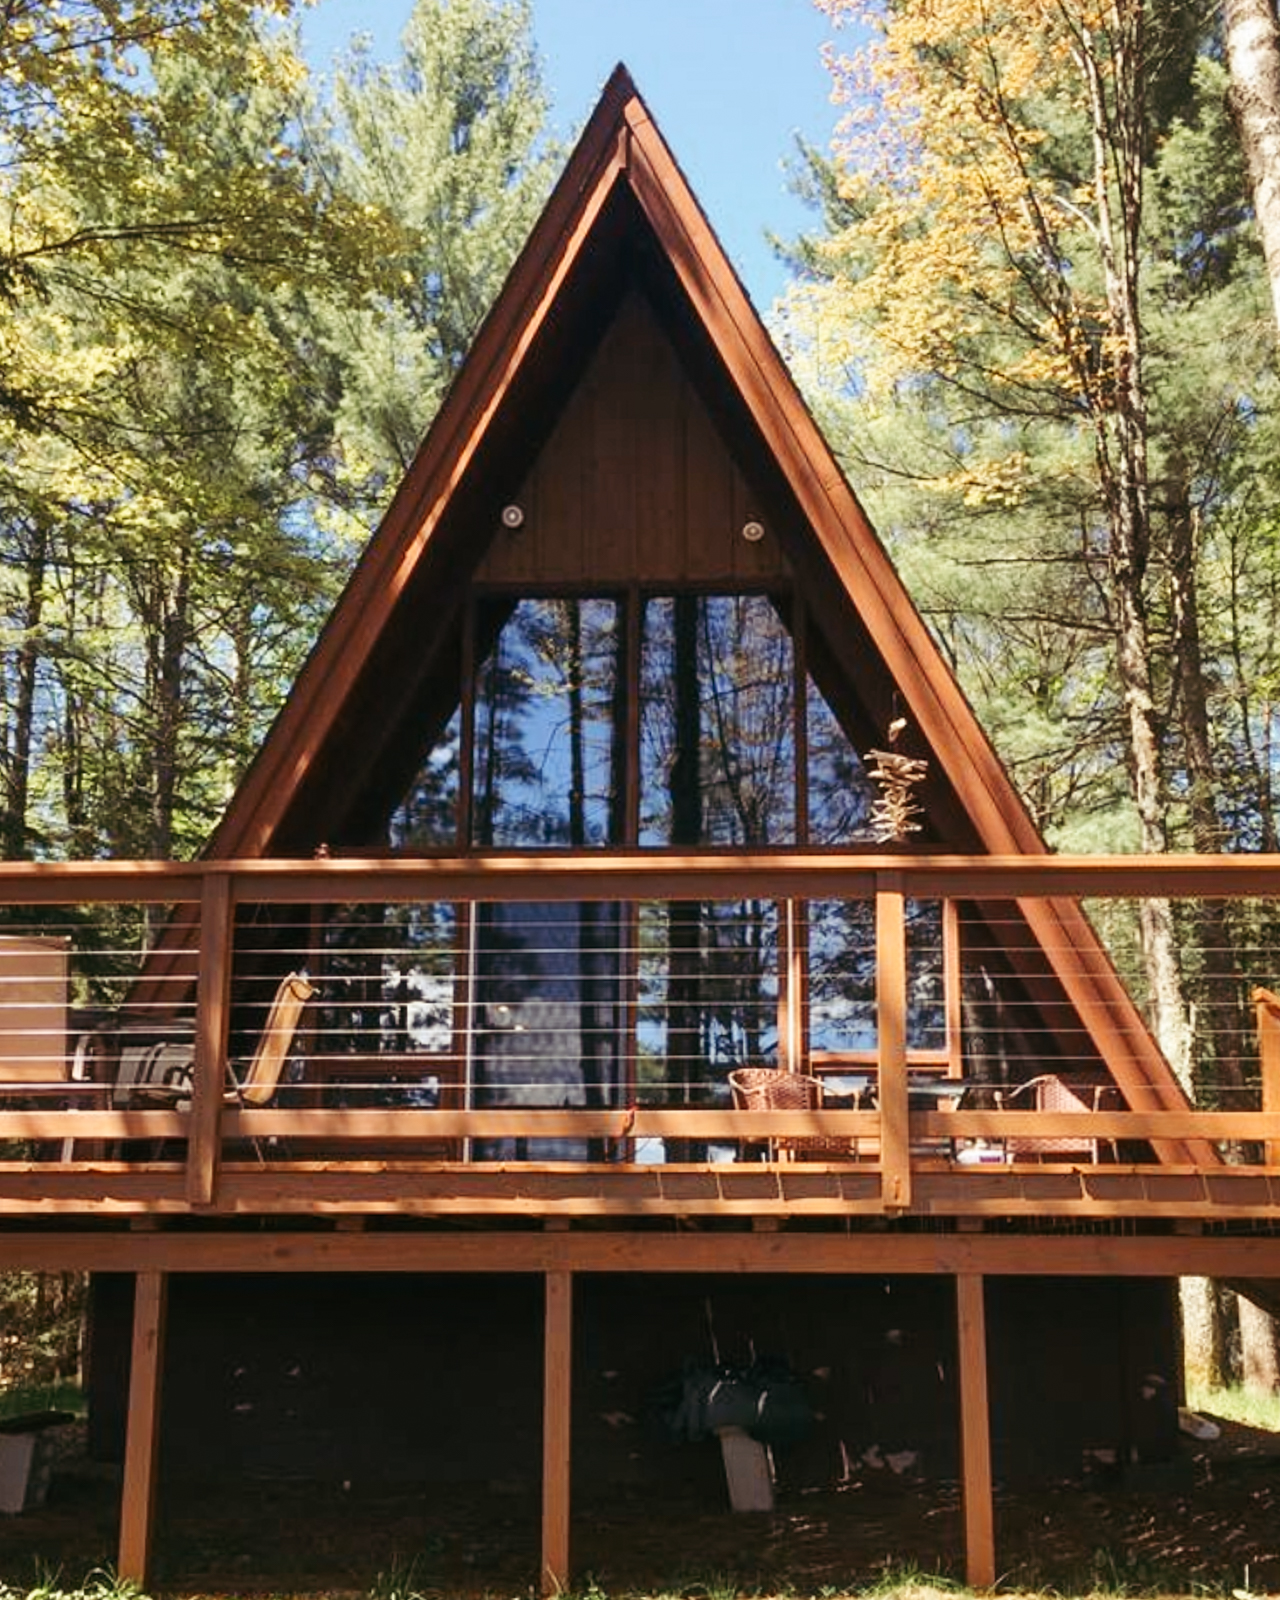 A Frame Cabin Rentals In Wisconsin We are following cdc guidelines for cleaning all properties to keep our guests and our staff safe. a frame cabin rentals in wisconsin